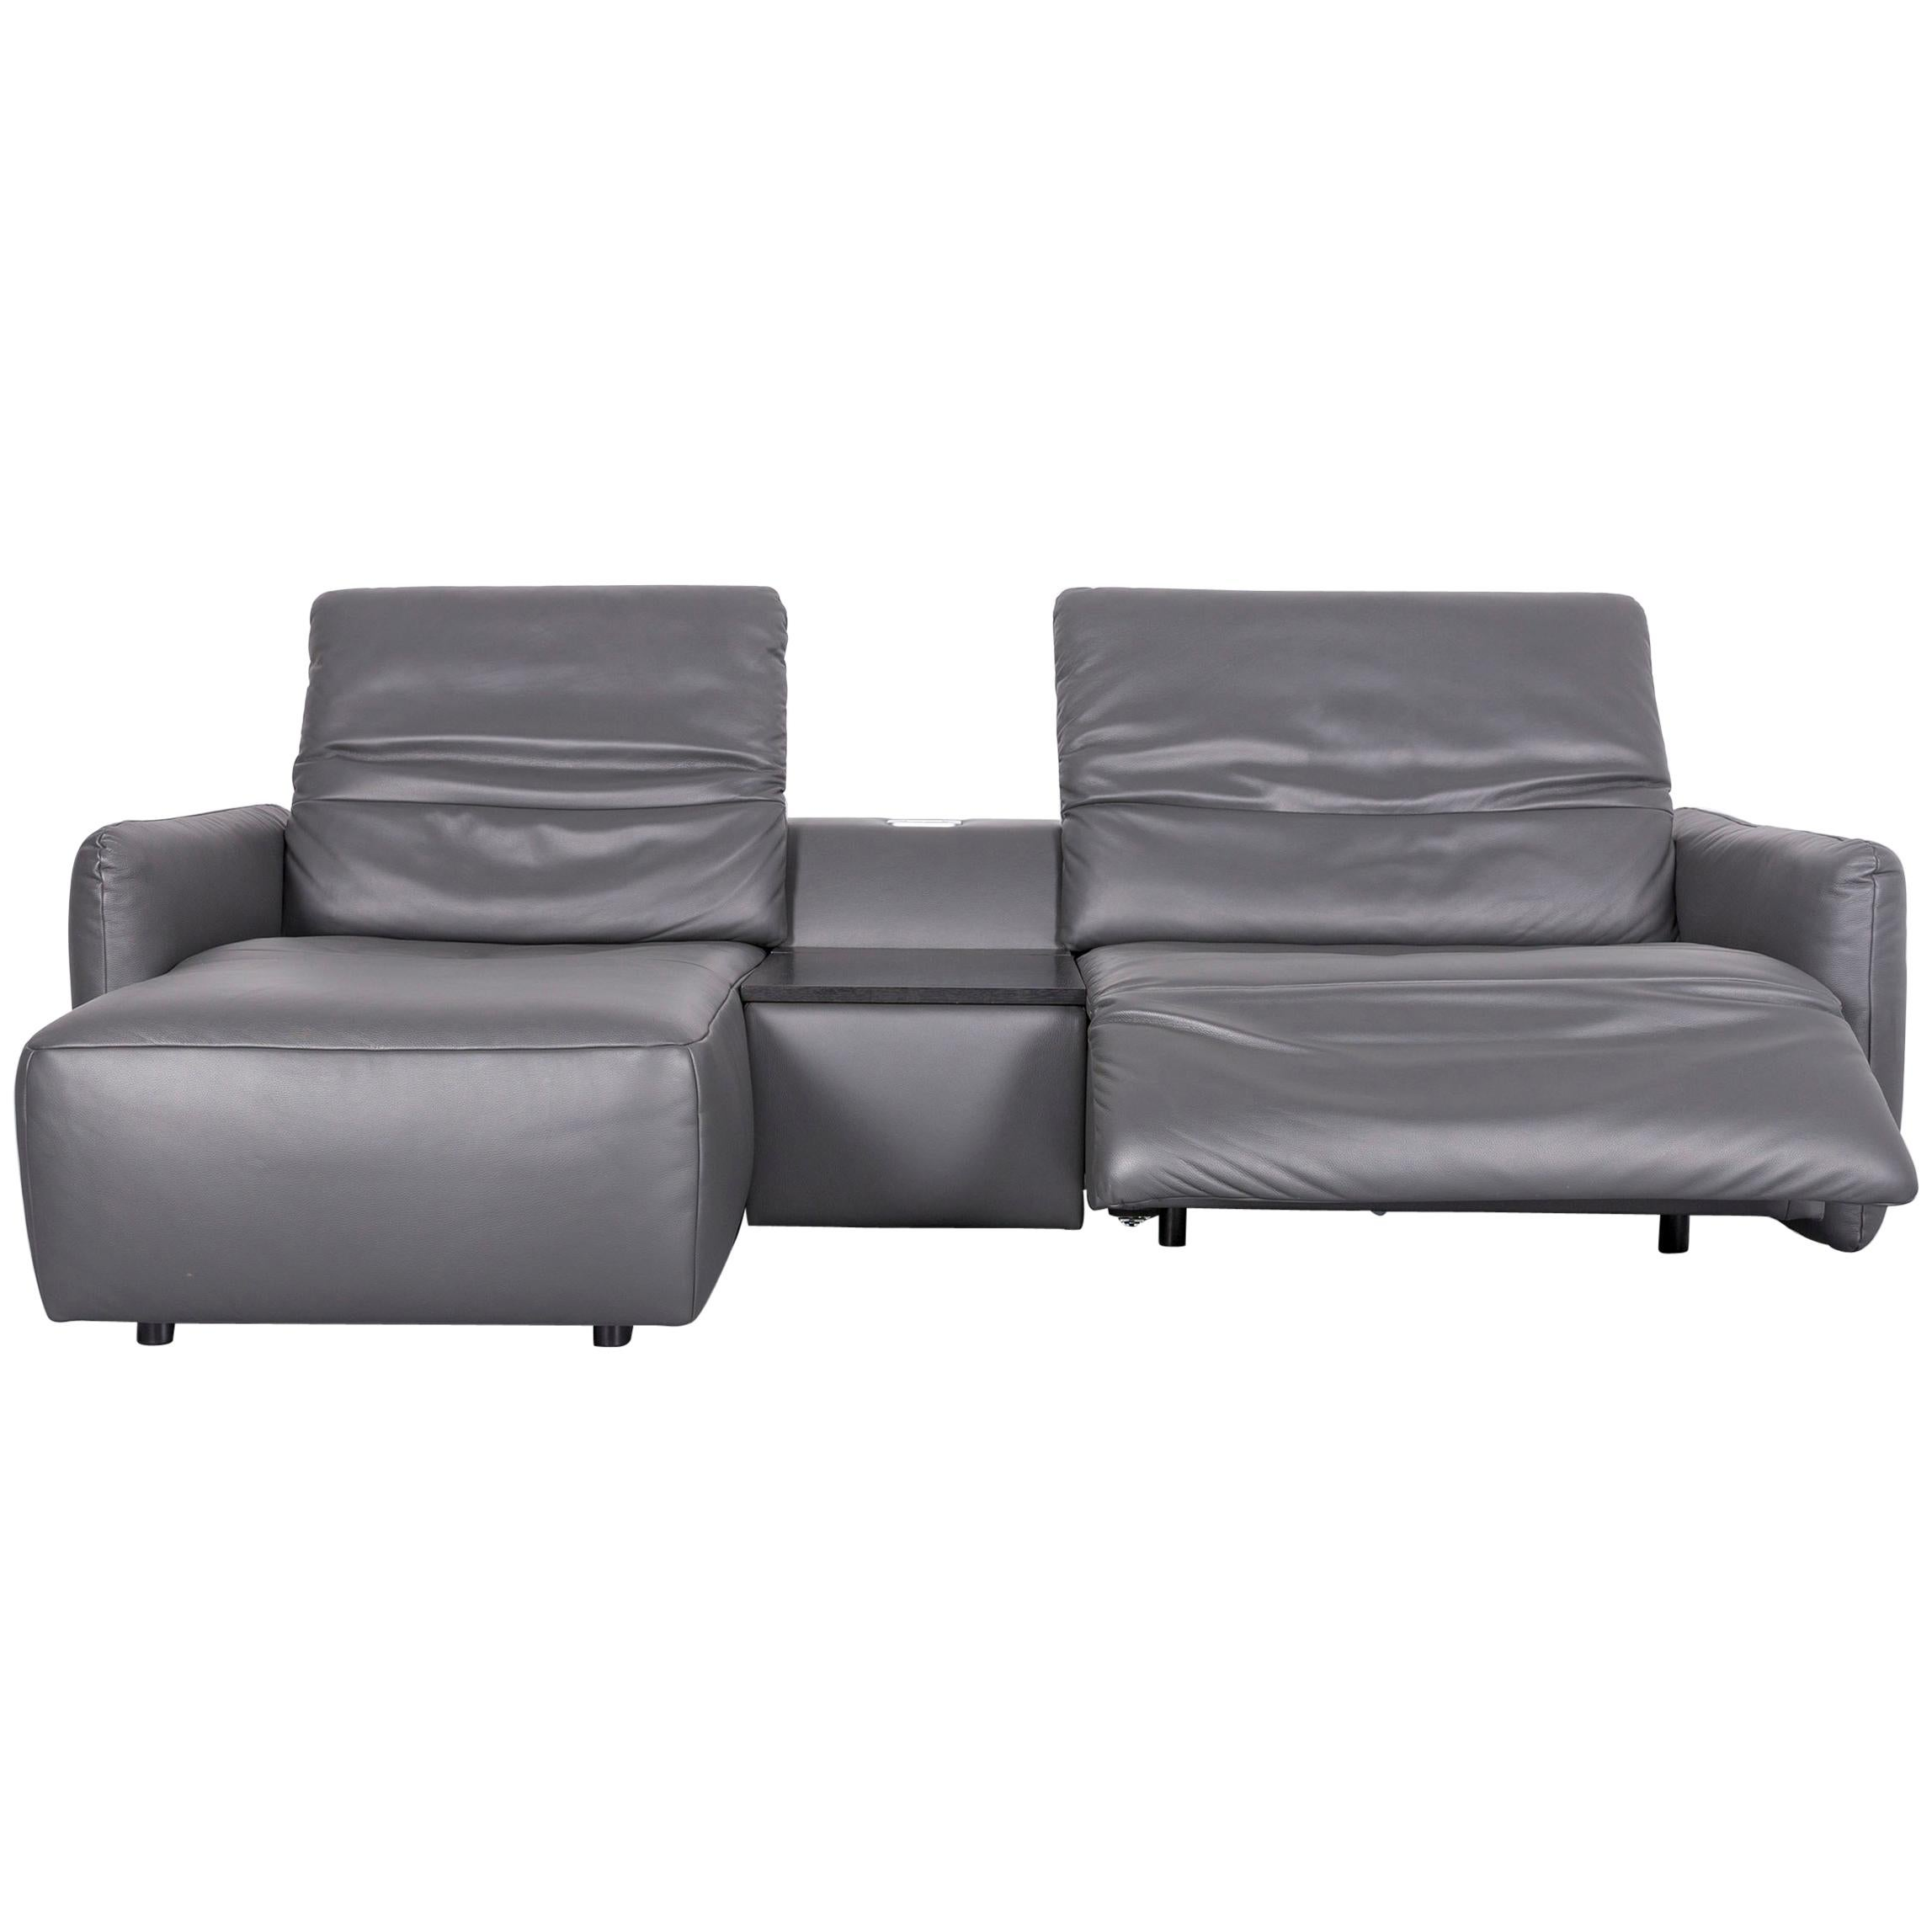 Koinor Alexa Leather Sofa Grey Two Seat Couch Recliner